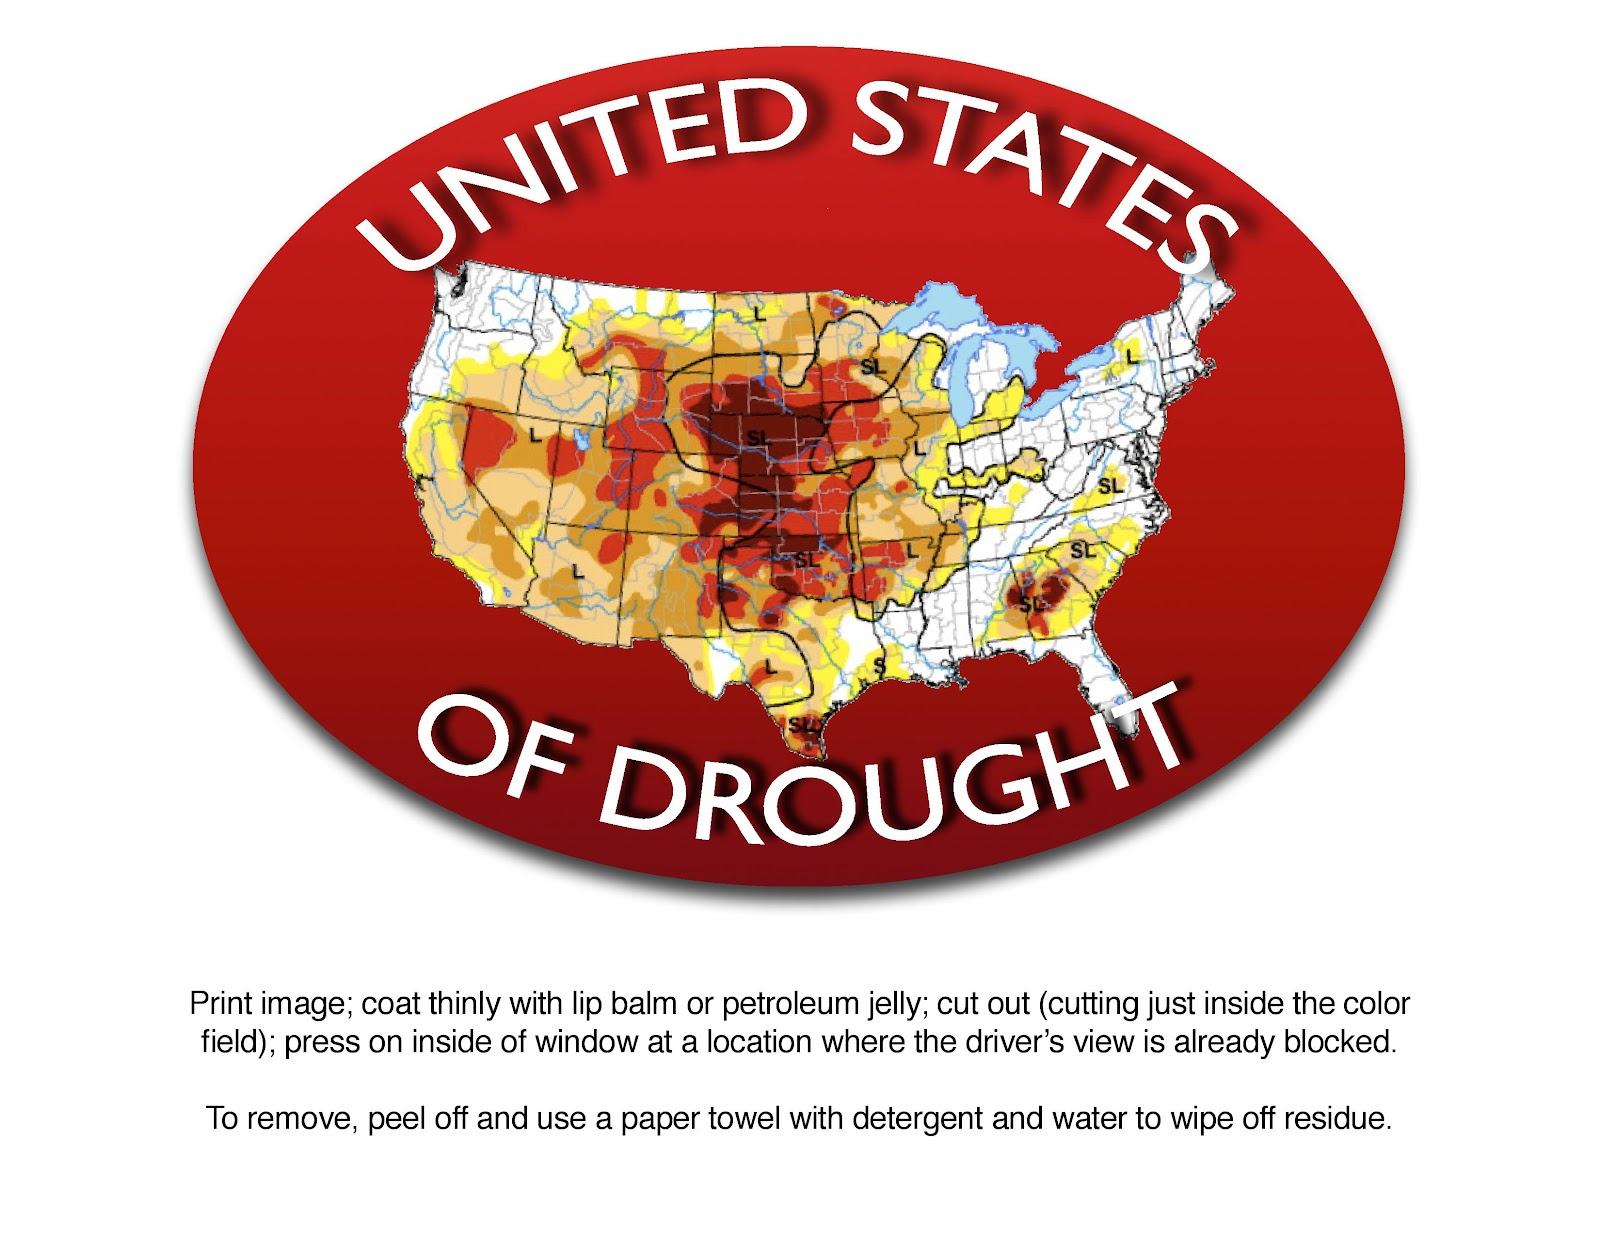 the usda drought map for november 2012 this is an instant window sticker just follow the directions in the image modifiable versions on google drive